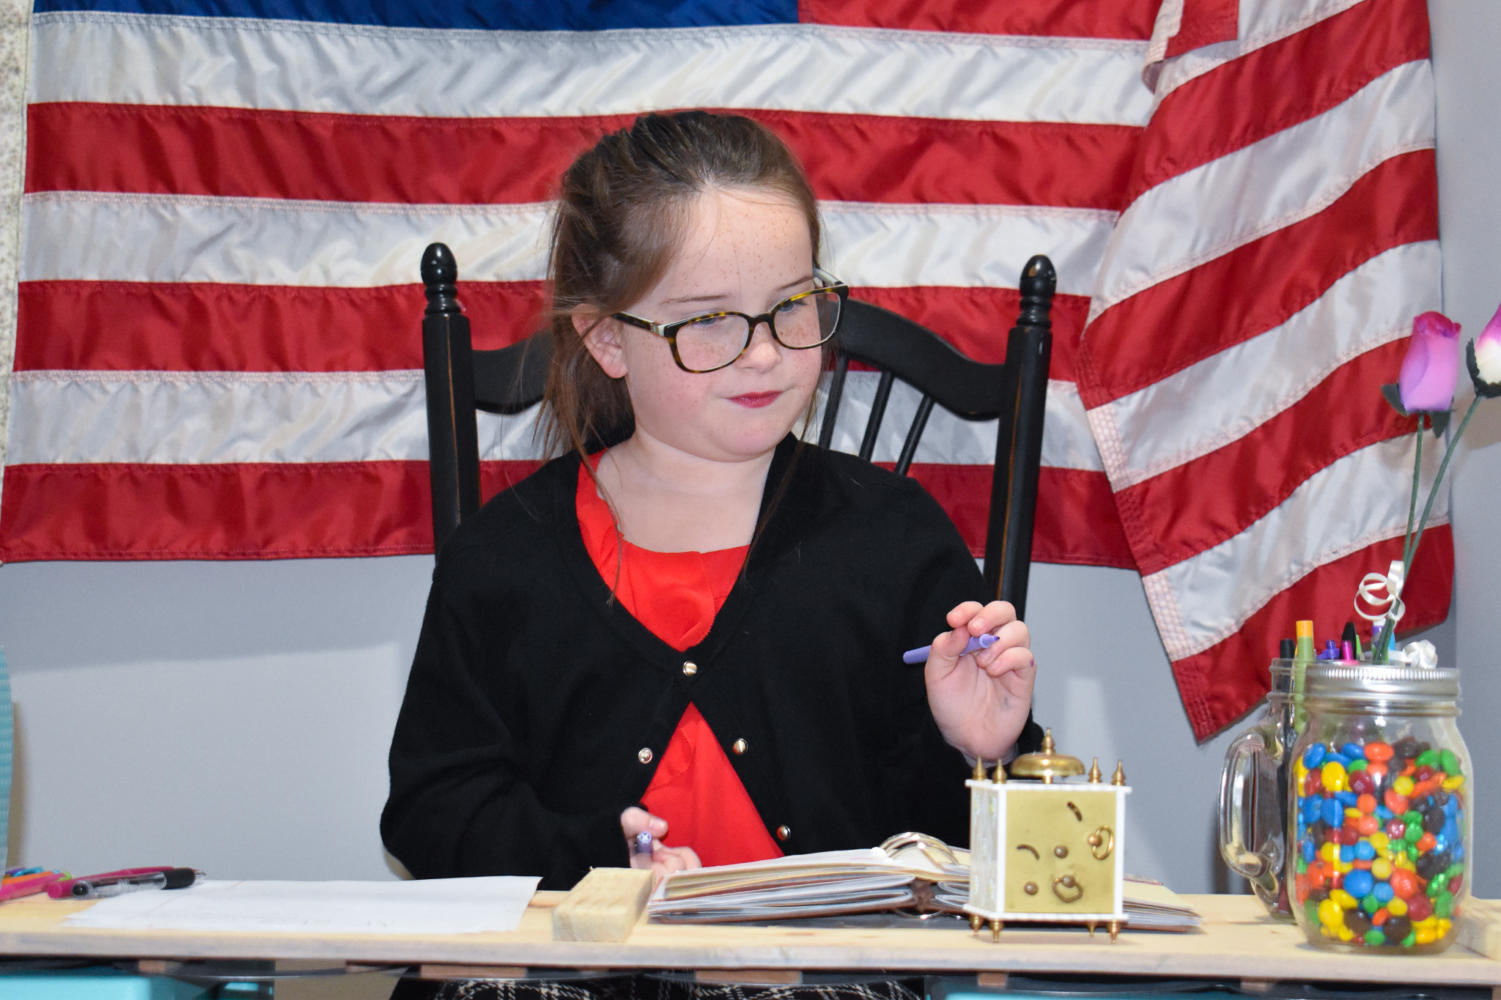 Seven year old Bella Hoover pretends to be President, her dream might not be far out of reach.